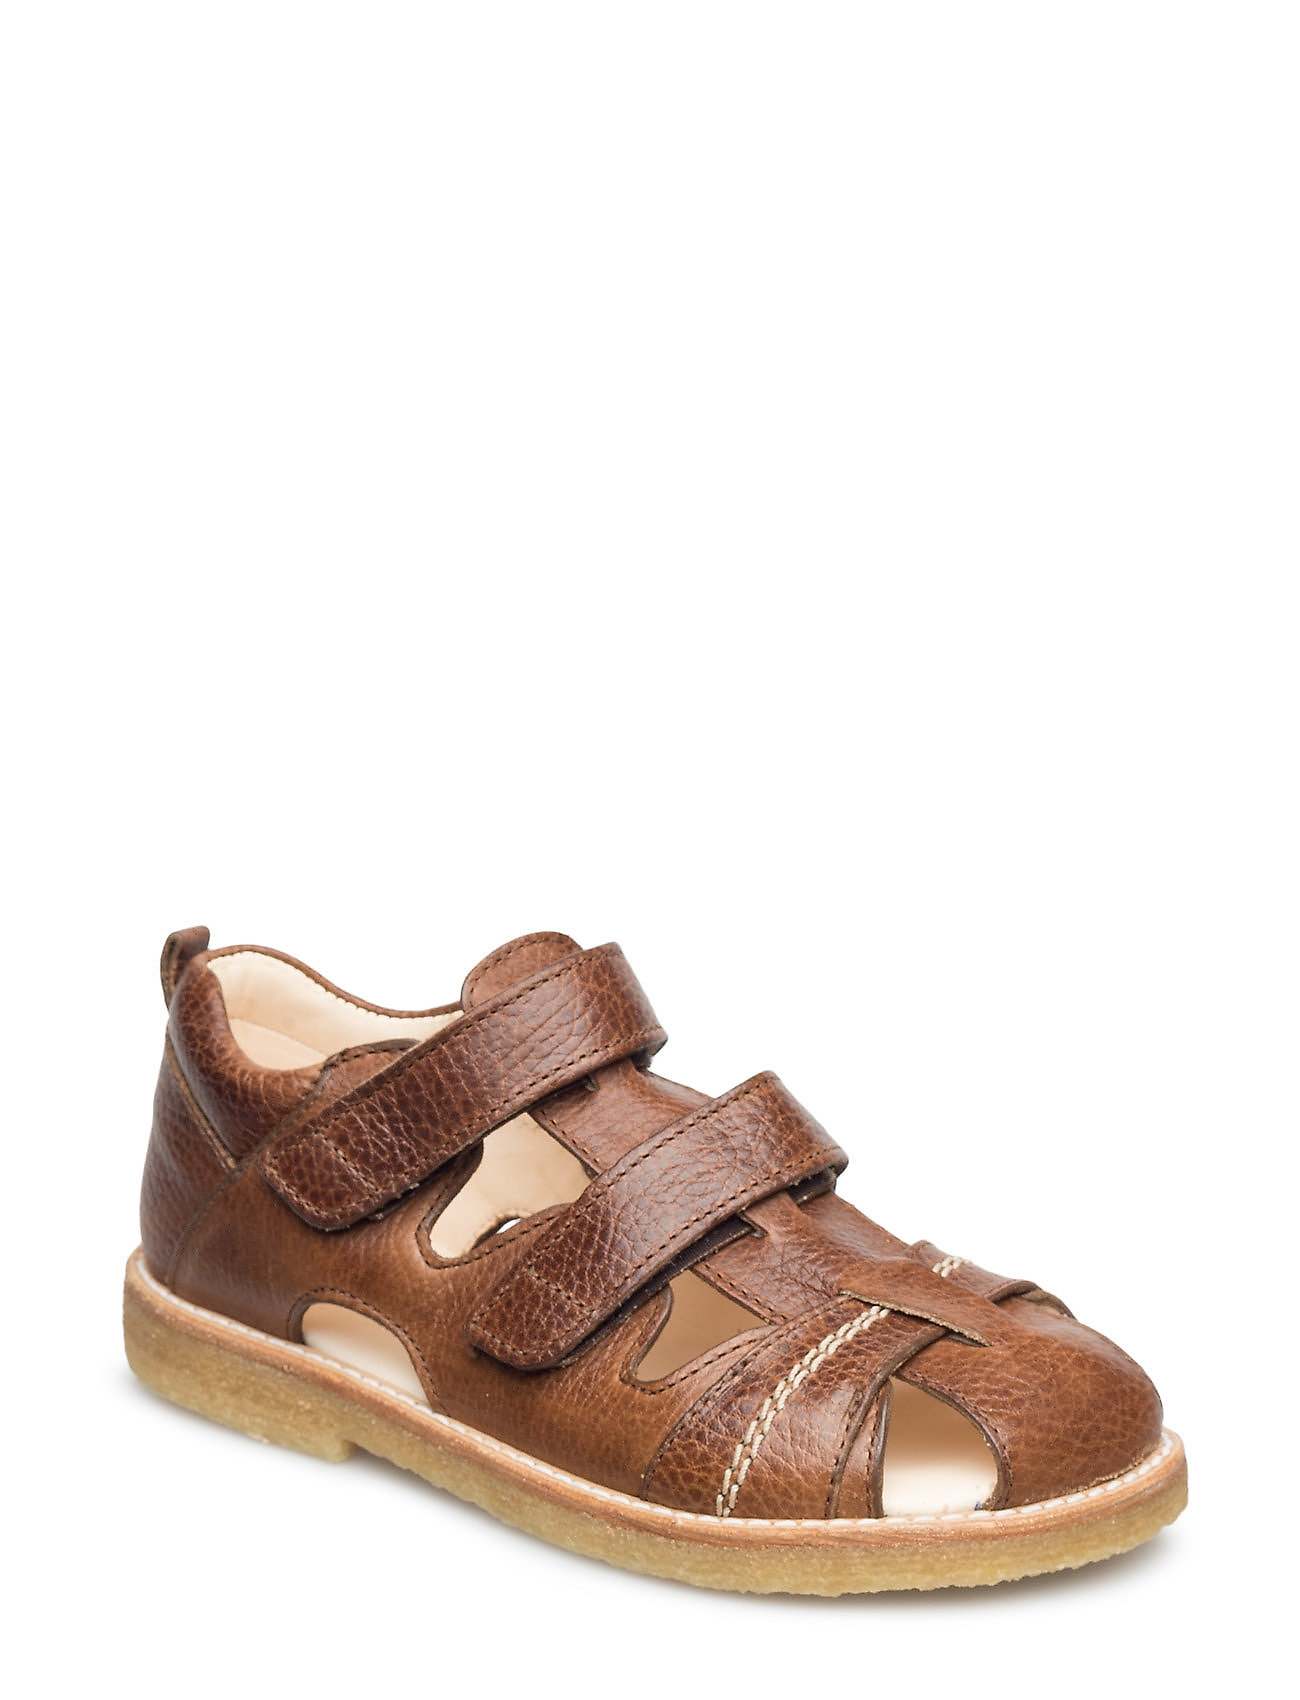 ANGULUS Sandal with 2 velcro closures - 2509 COGNAC